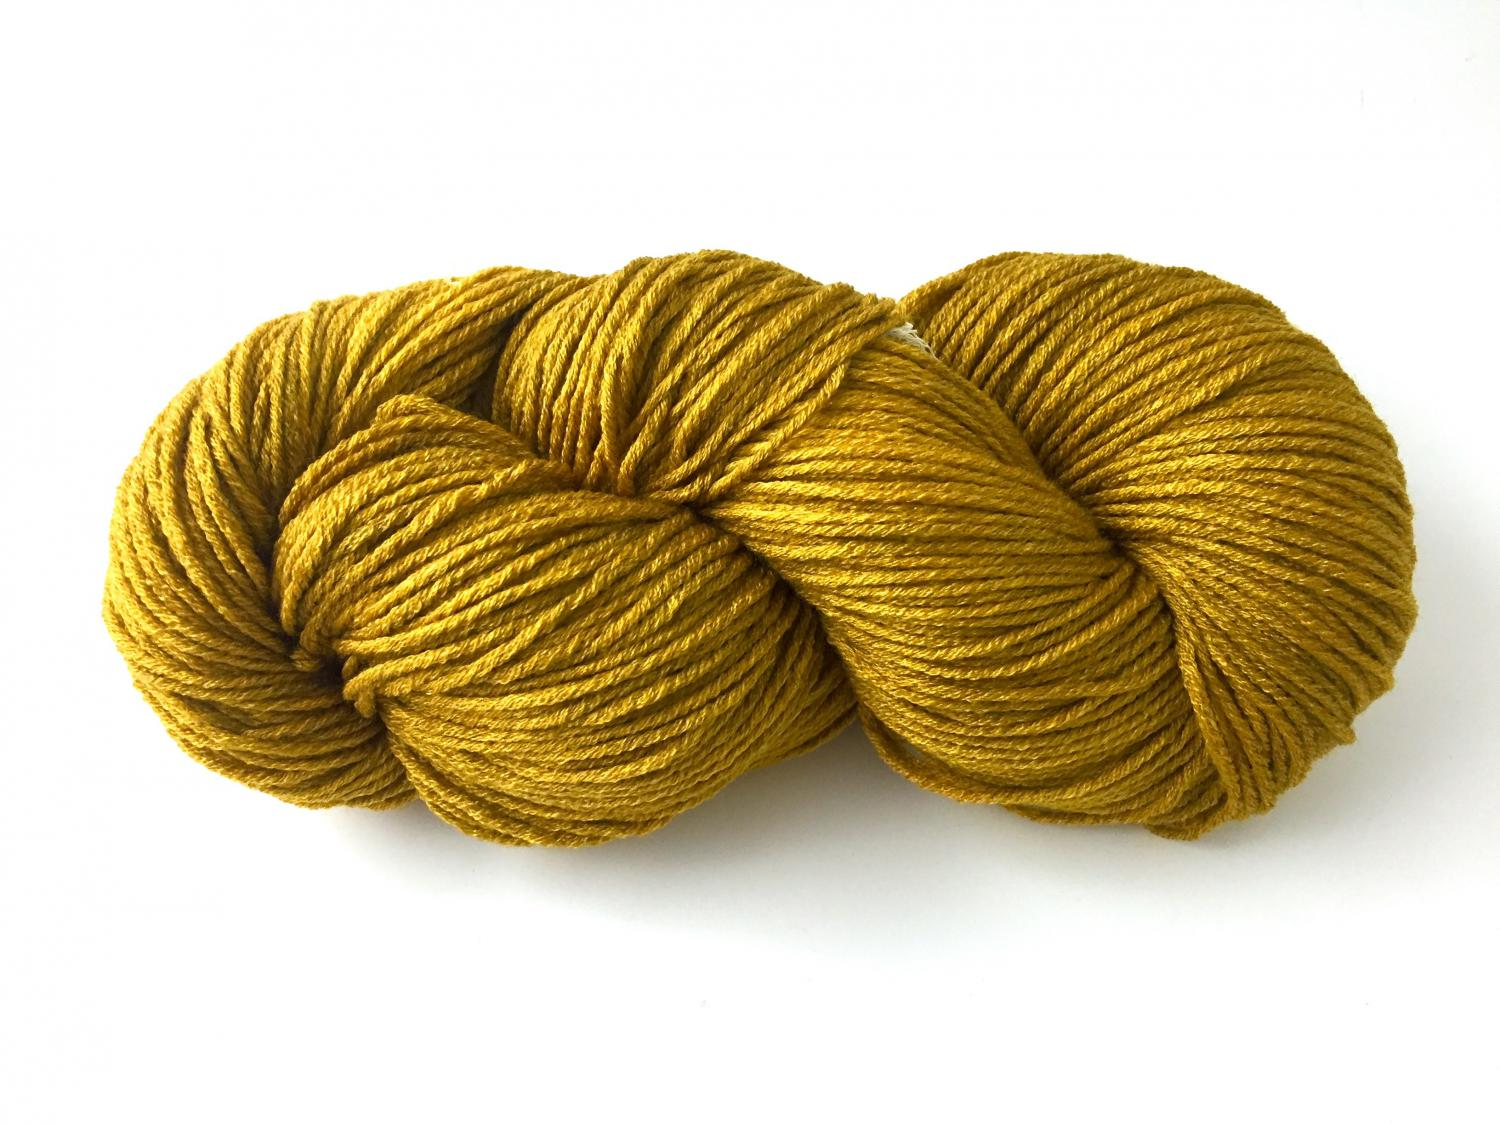 cable merinosilk magliamania hand dyed yarns. Black Bedroom Furniture Sets. Home Design Ideas